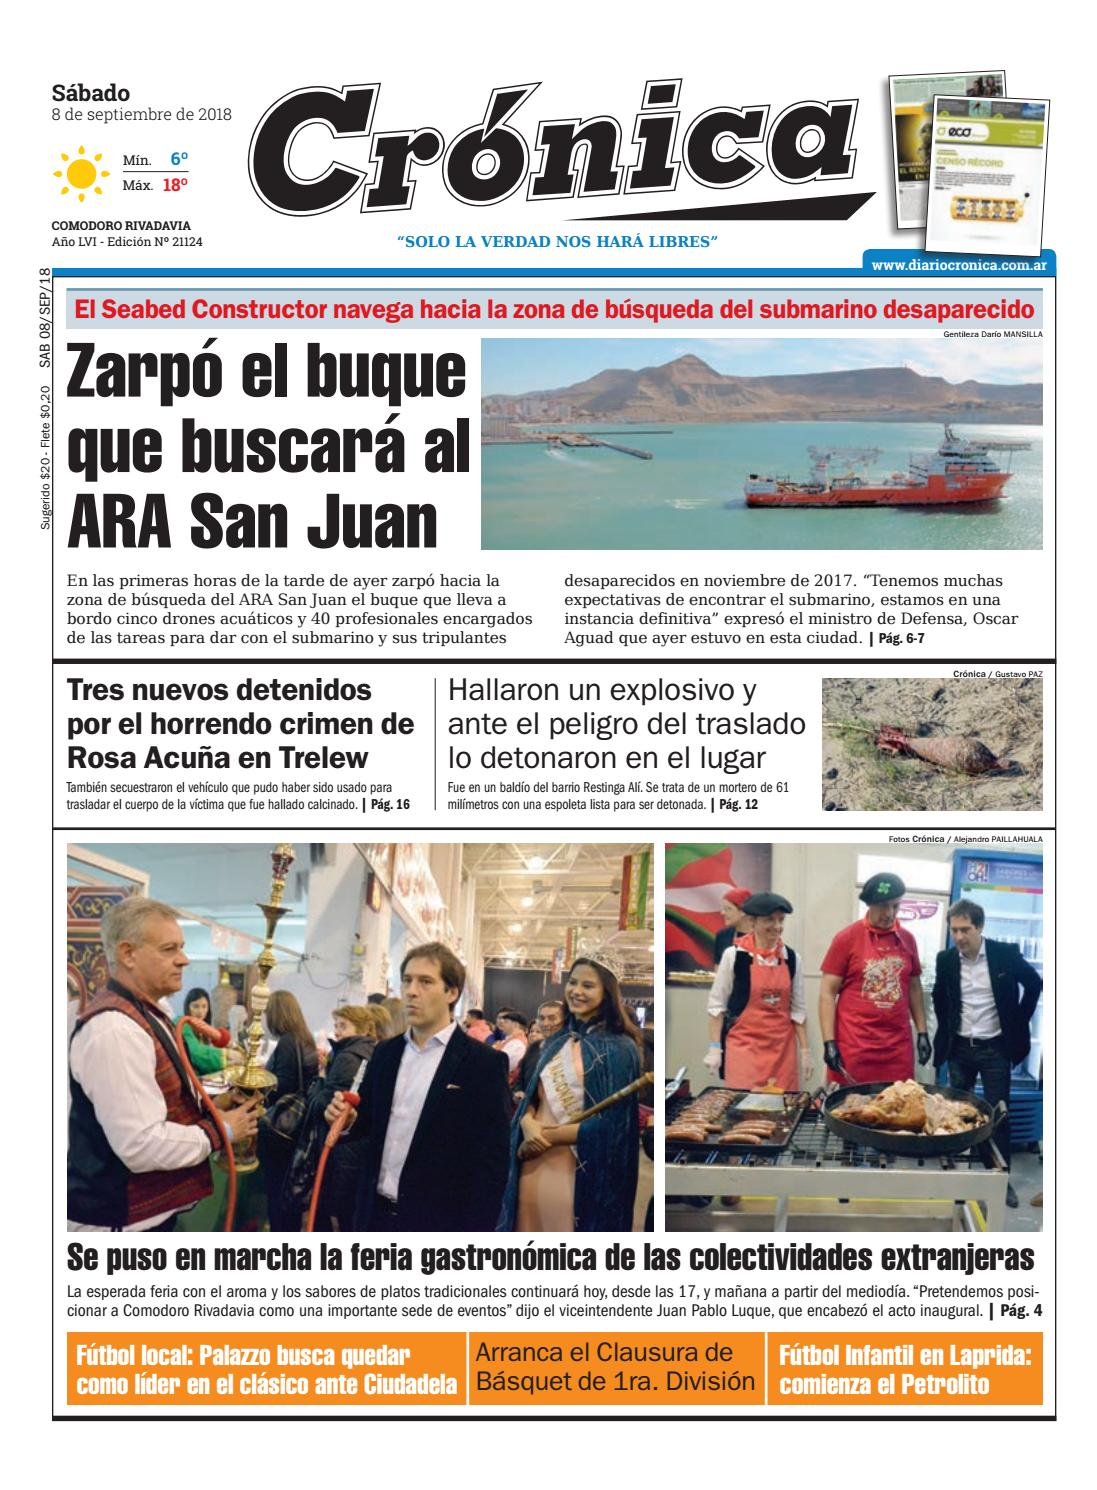 Diario cronica 08 09 2018 by Diario Crónica - issuu